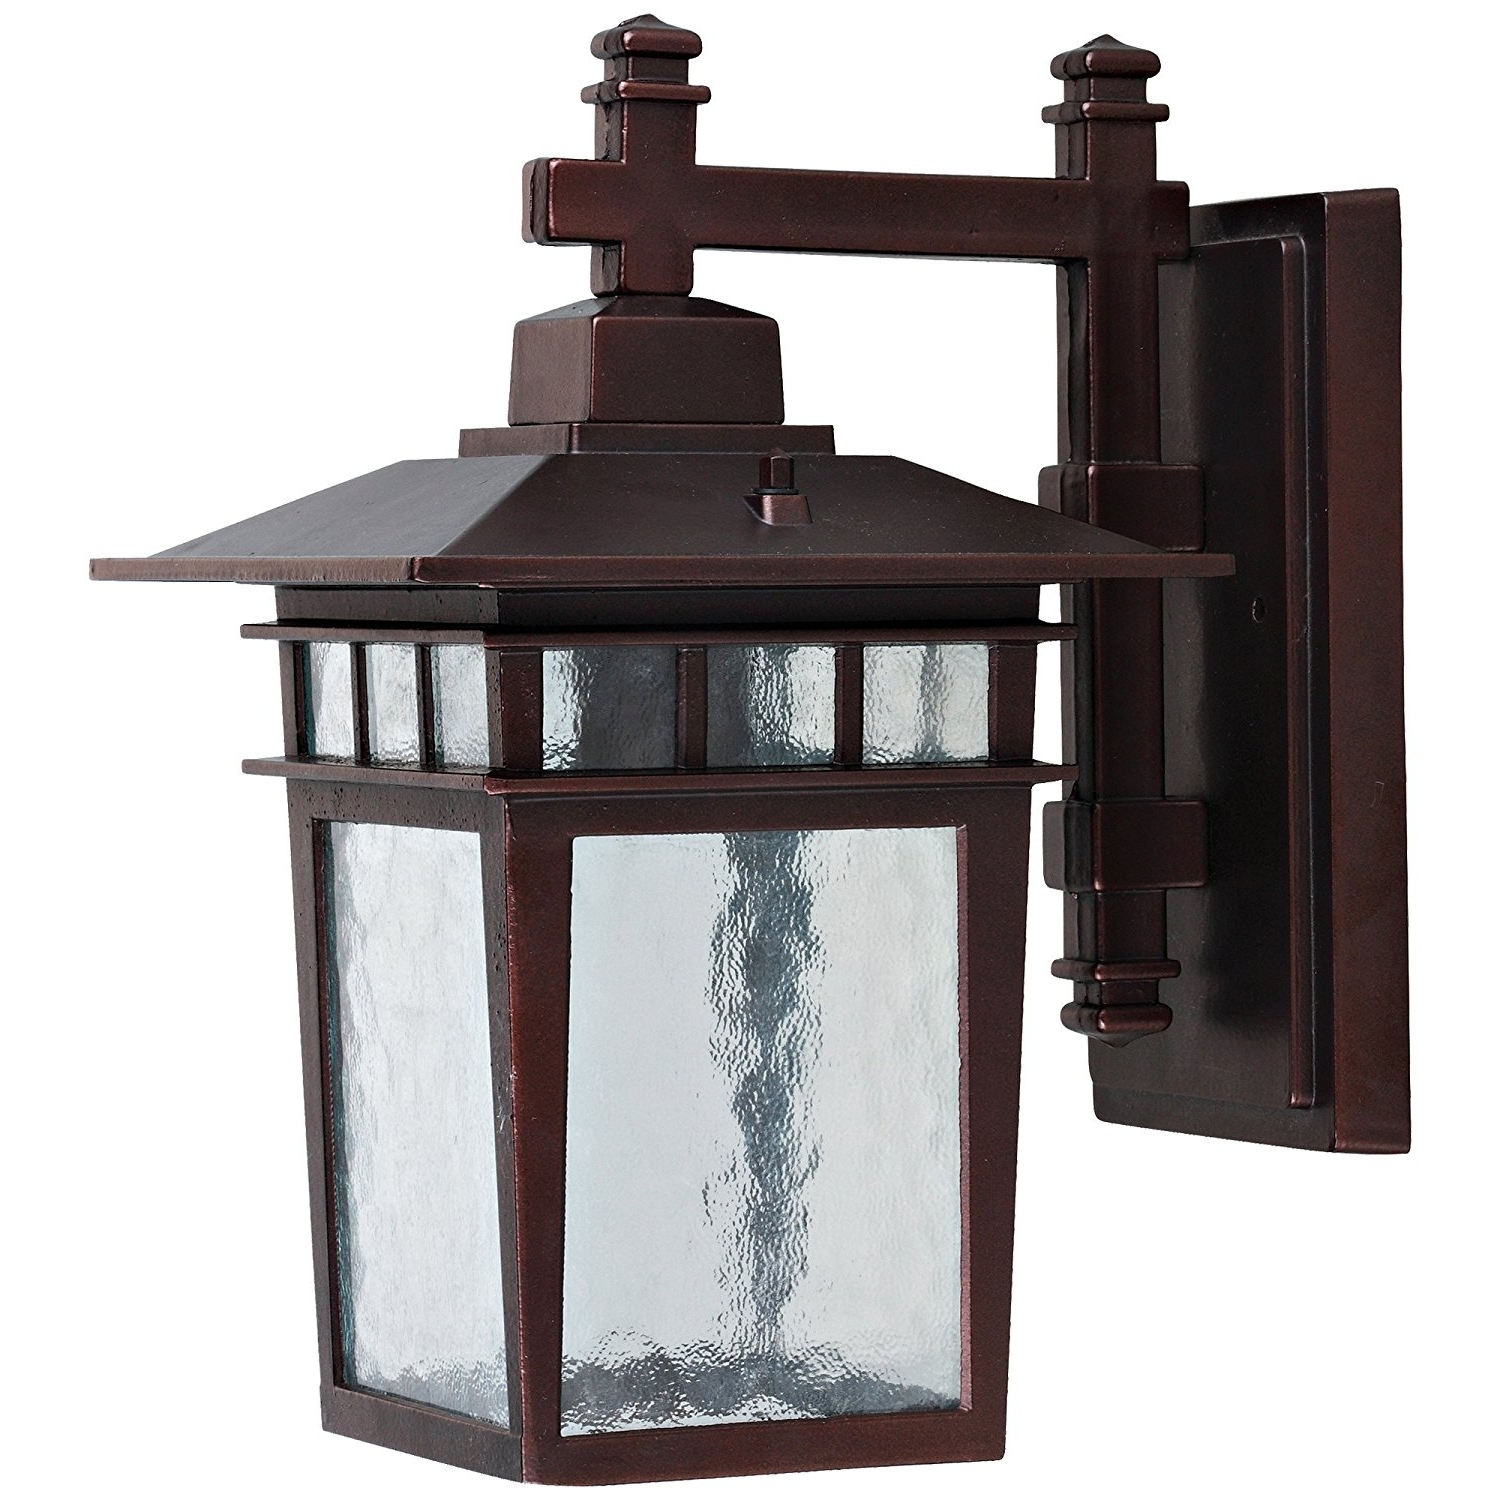 Garden Porch Light Fixtures At Wayfair Within Trendy Outdoor : Outside Wall Lamps Outdoor Sconce Light Fixtures Flush (View 12 of 20)